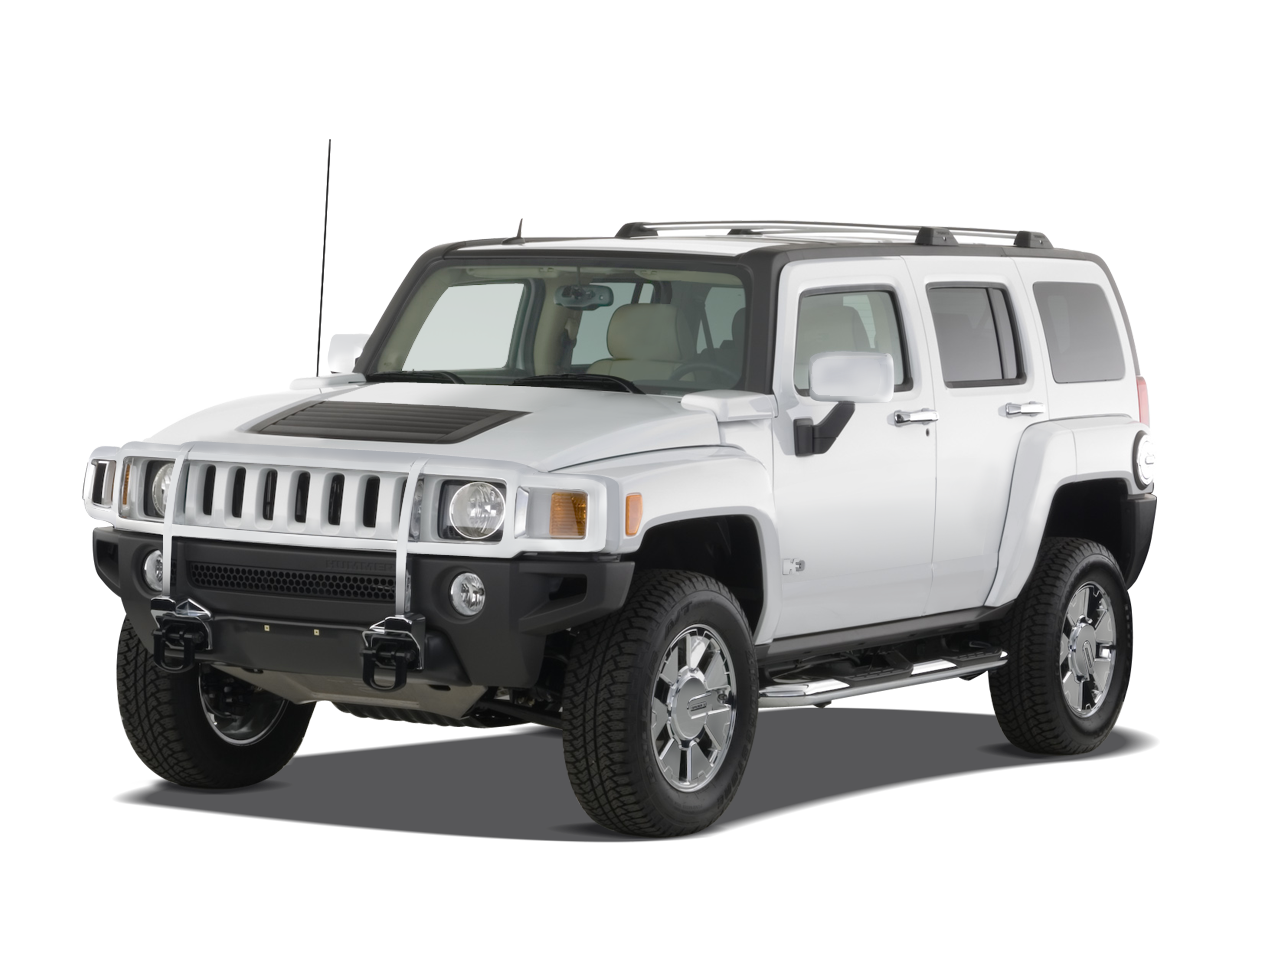 Car clipart small png free stock Hummer Clipart small hammer - Free Clipart on Dumielauxepices.net png free stock